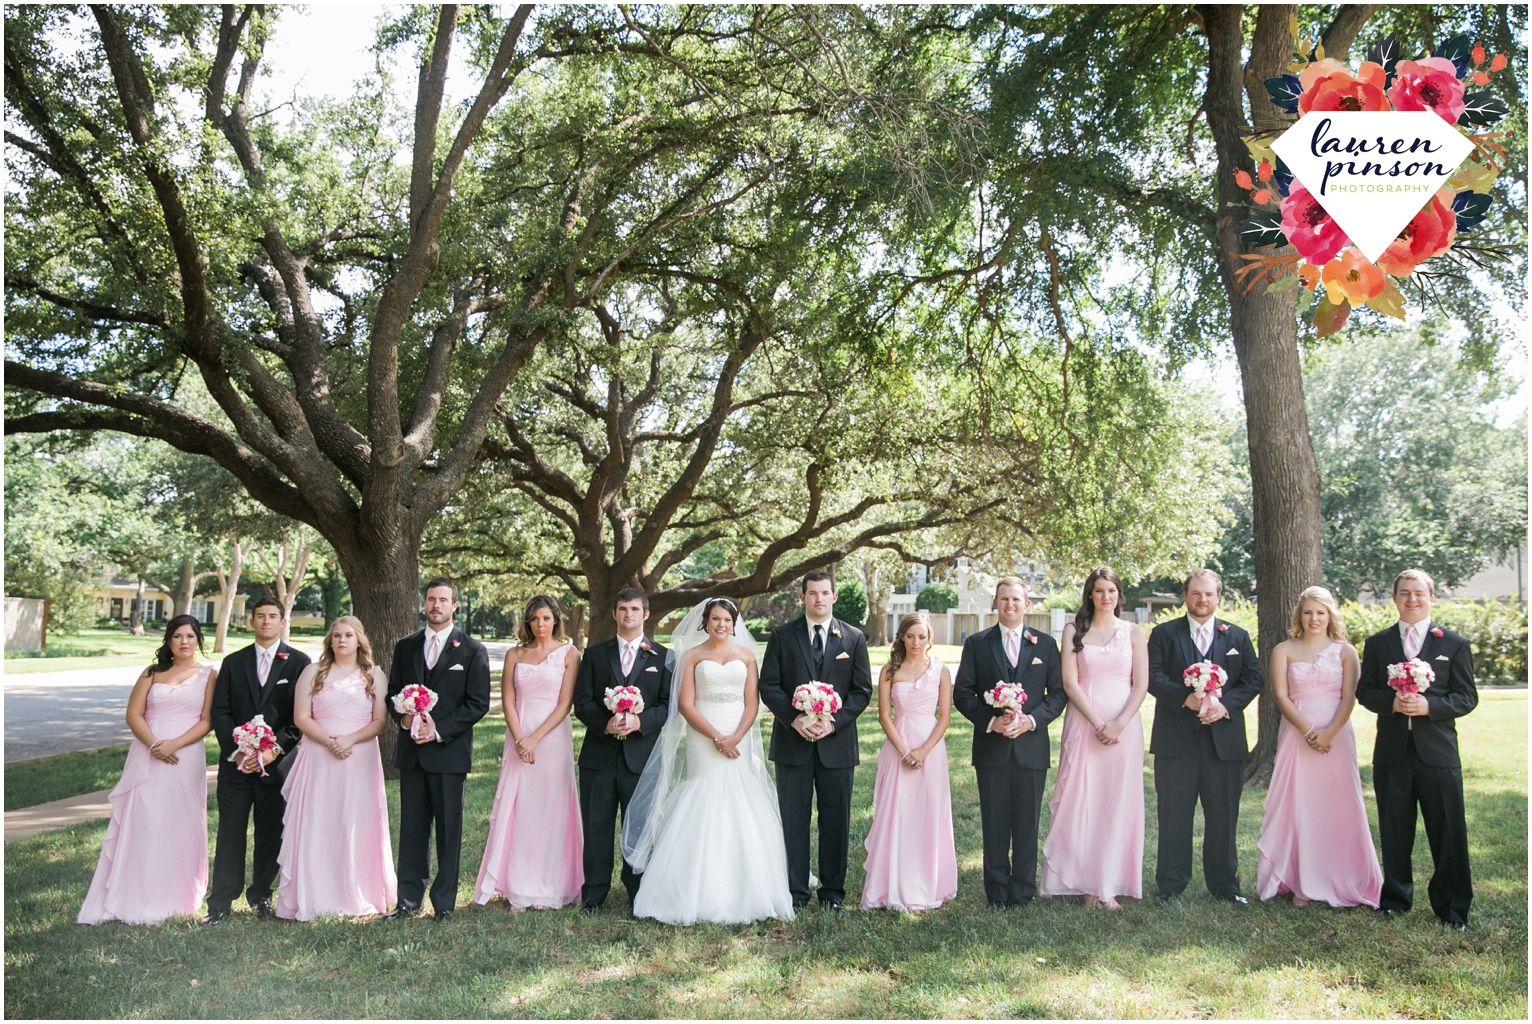 wichita-falls-wedding-photographer-kemp-center-at-the-forum-photography-two-clever-chicks_1018.jpg